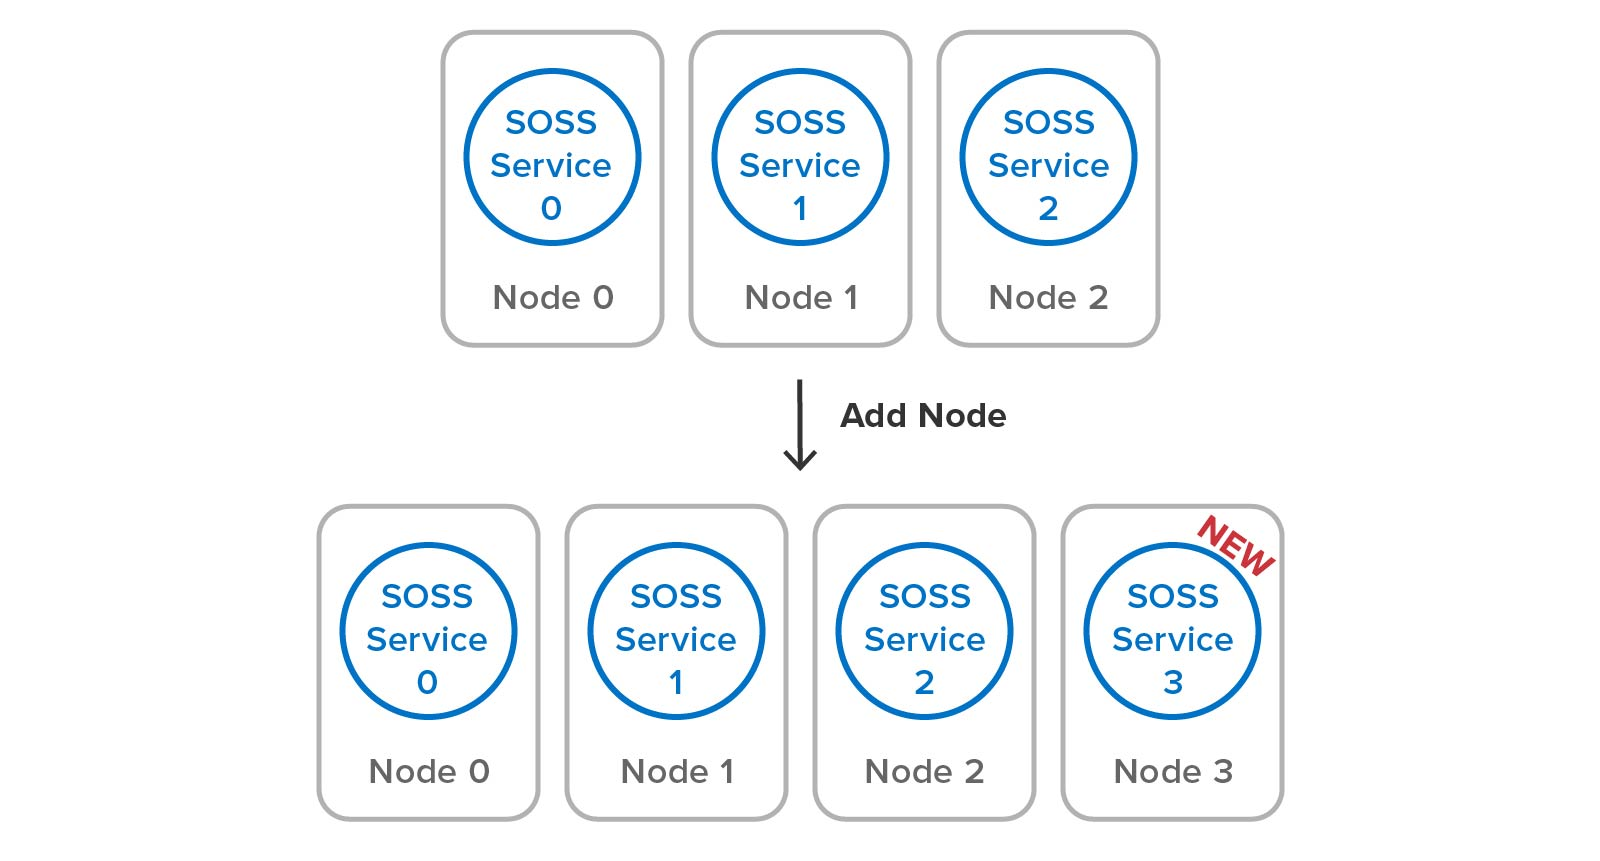 Adding a node to SOSS just requires adding a service process to the cluster.